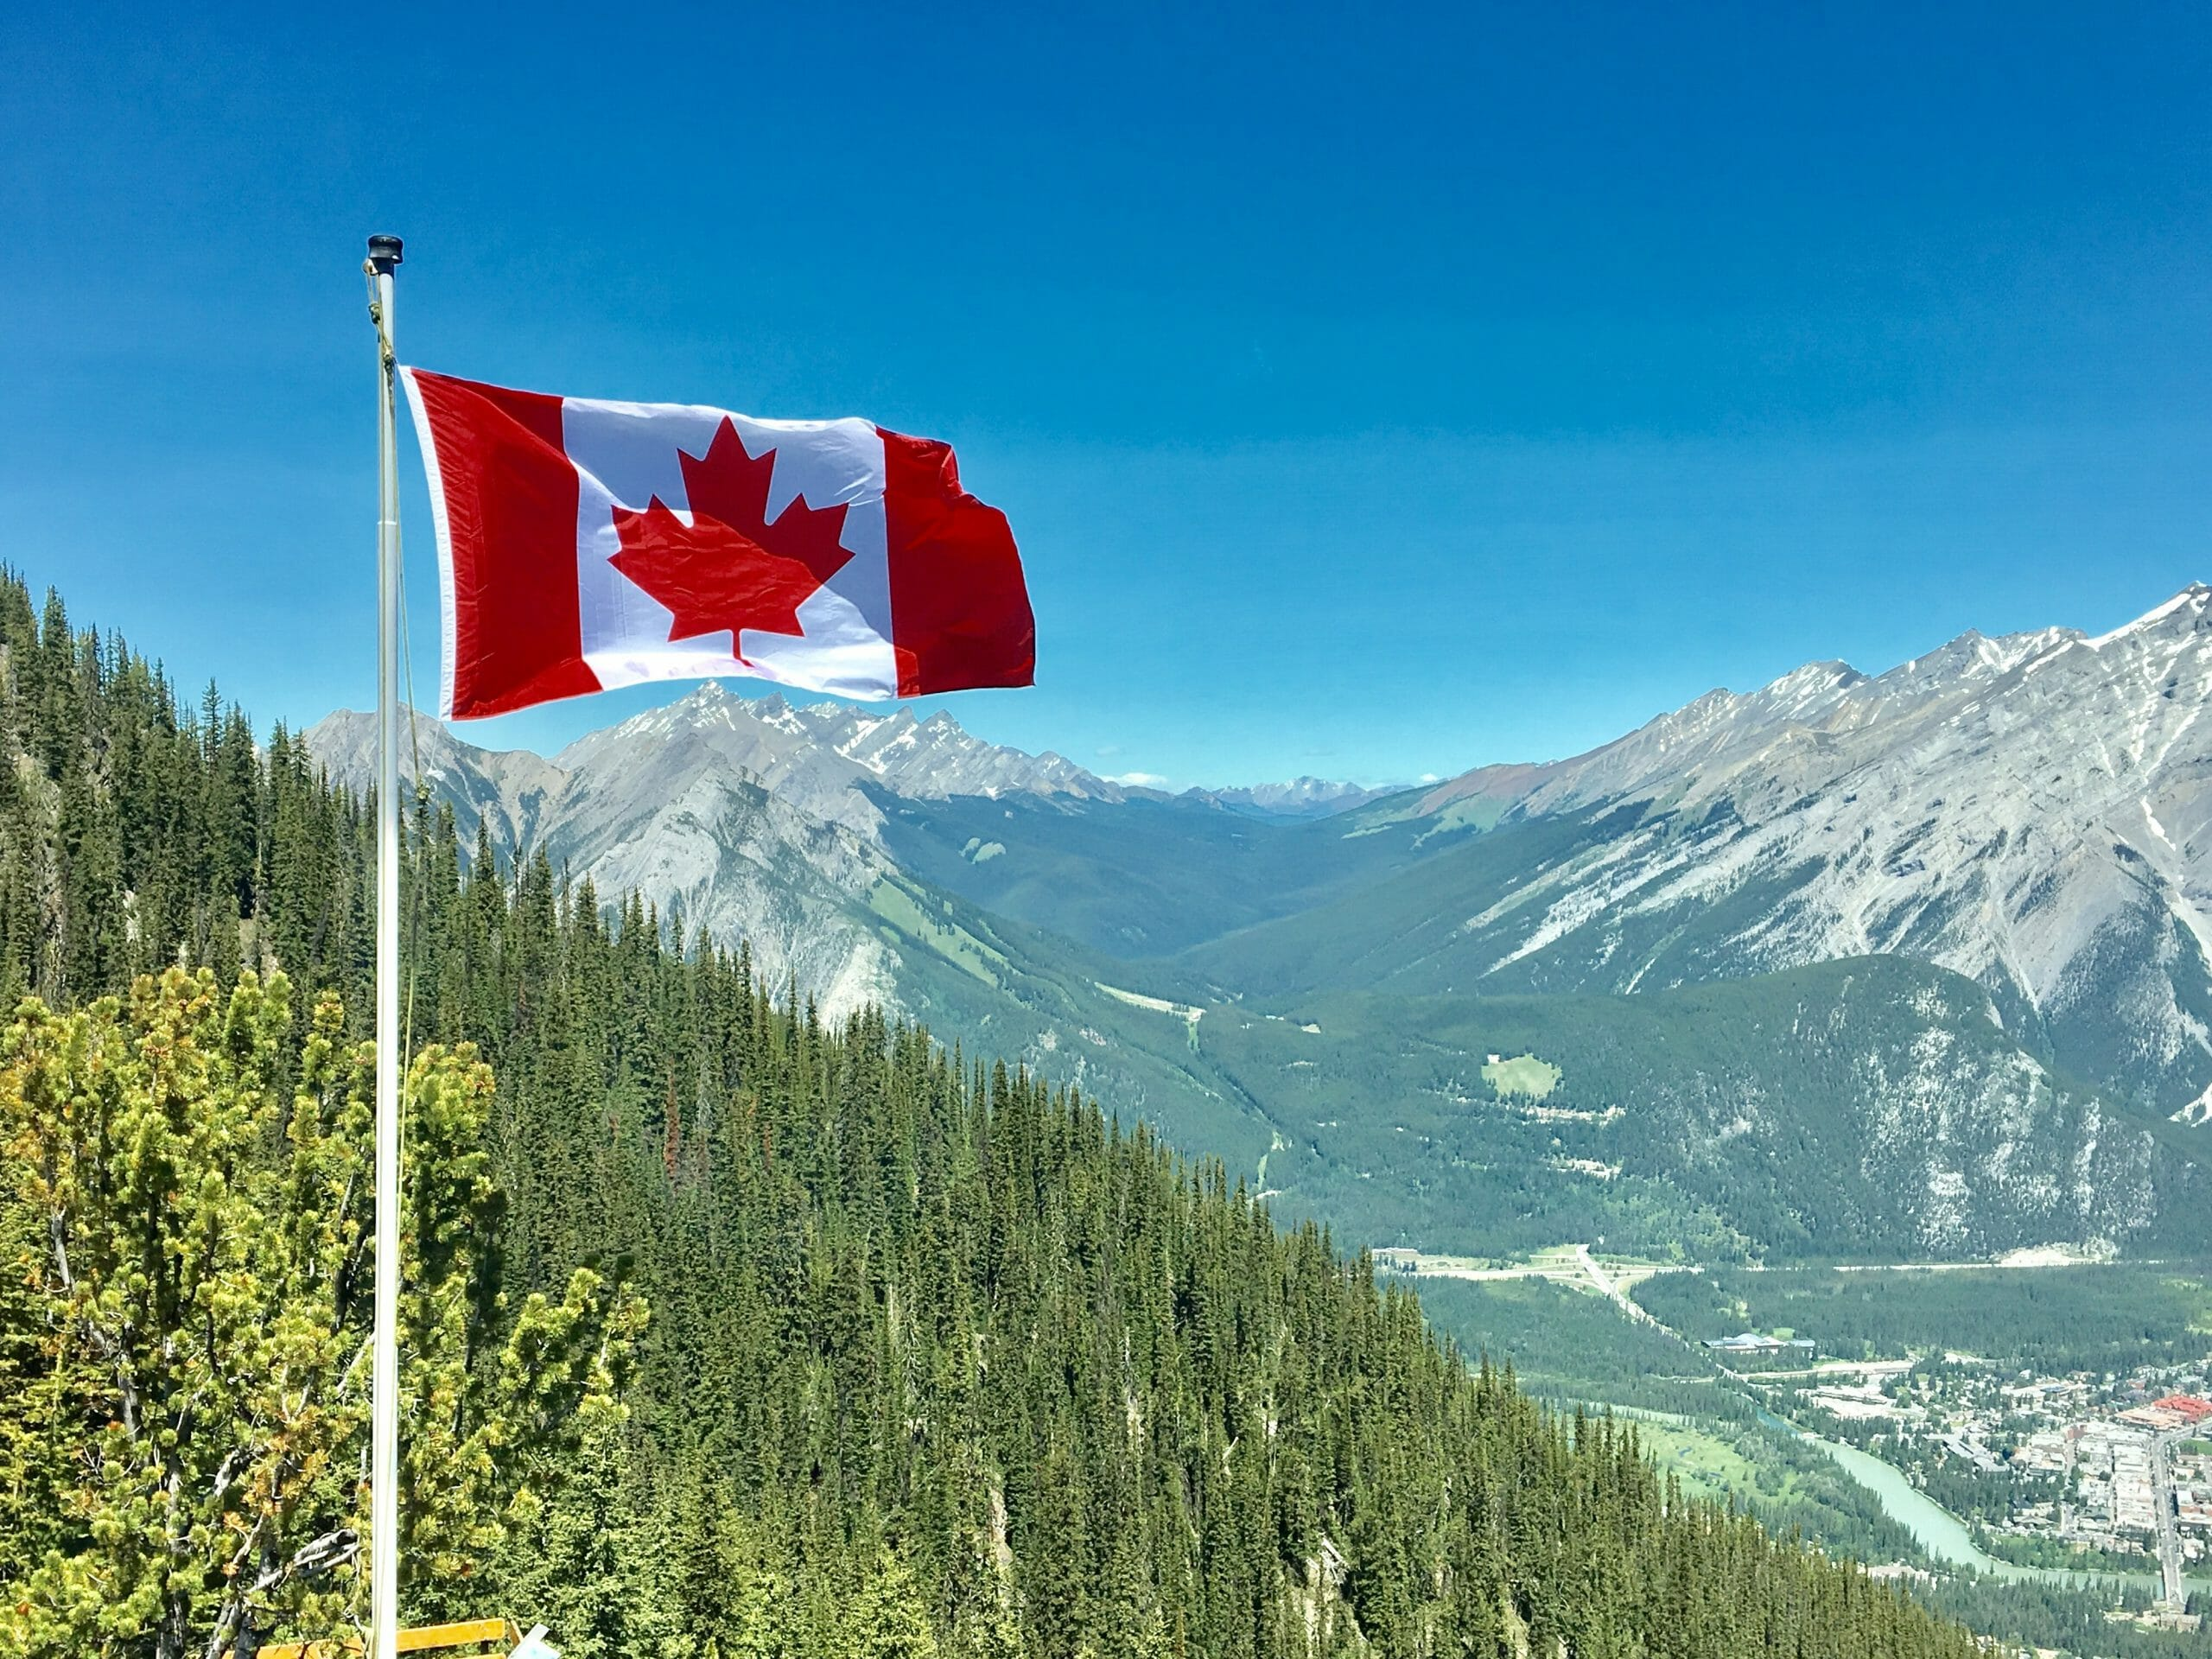 FINDING YOUR WAY INTO CANADA, SURE SIX (6) PATHWAYS